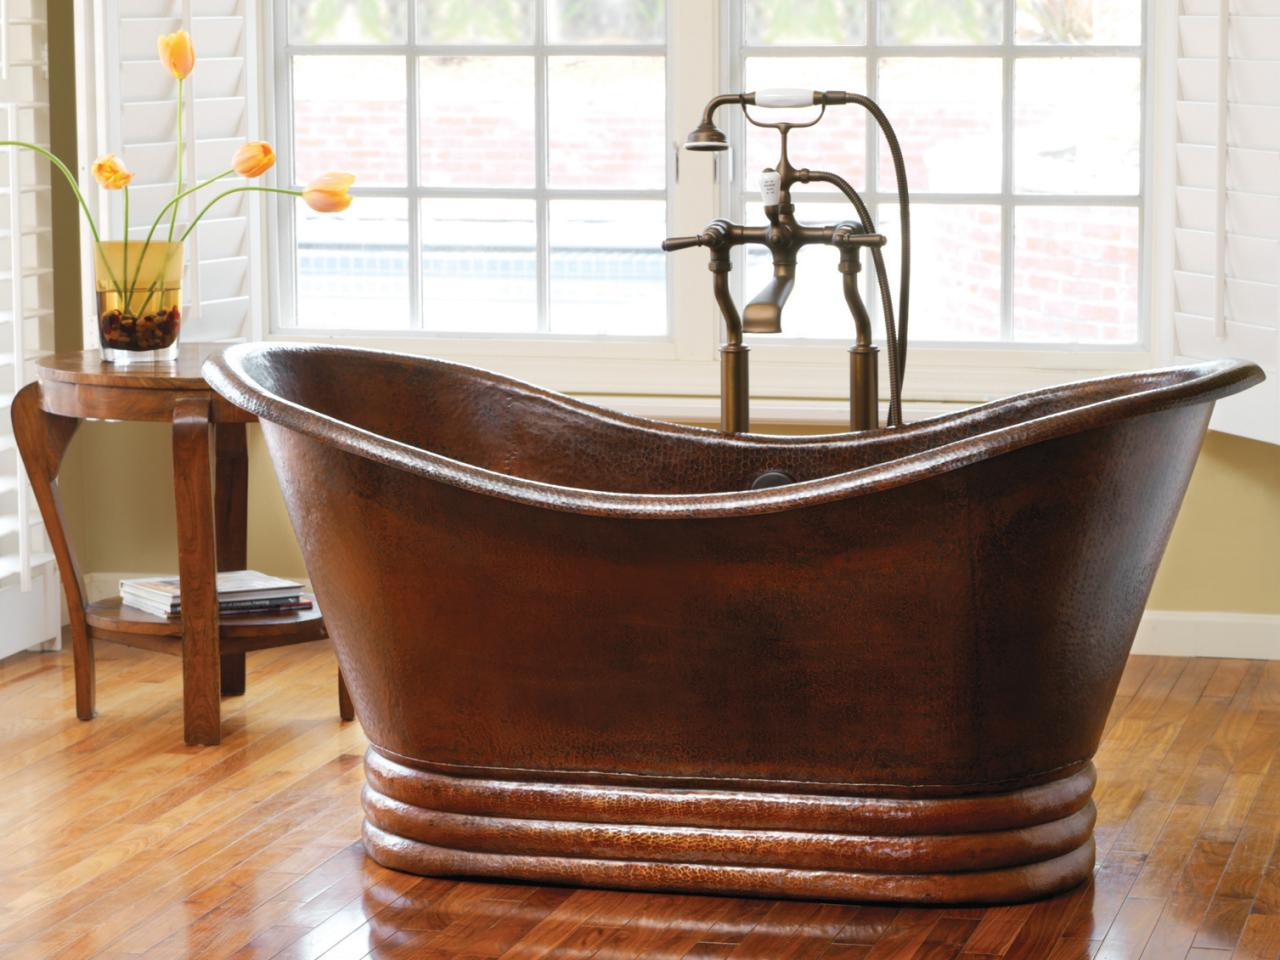 How To Choose A Bathtub HGTV - Free standing jetted soaking tub